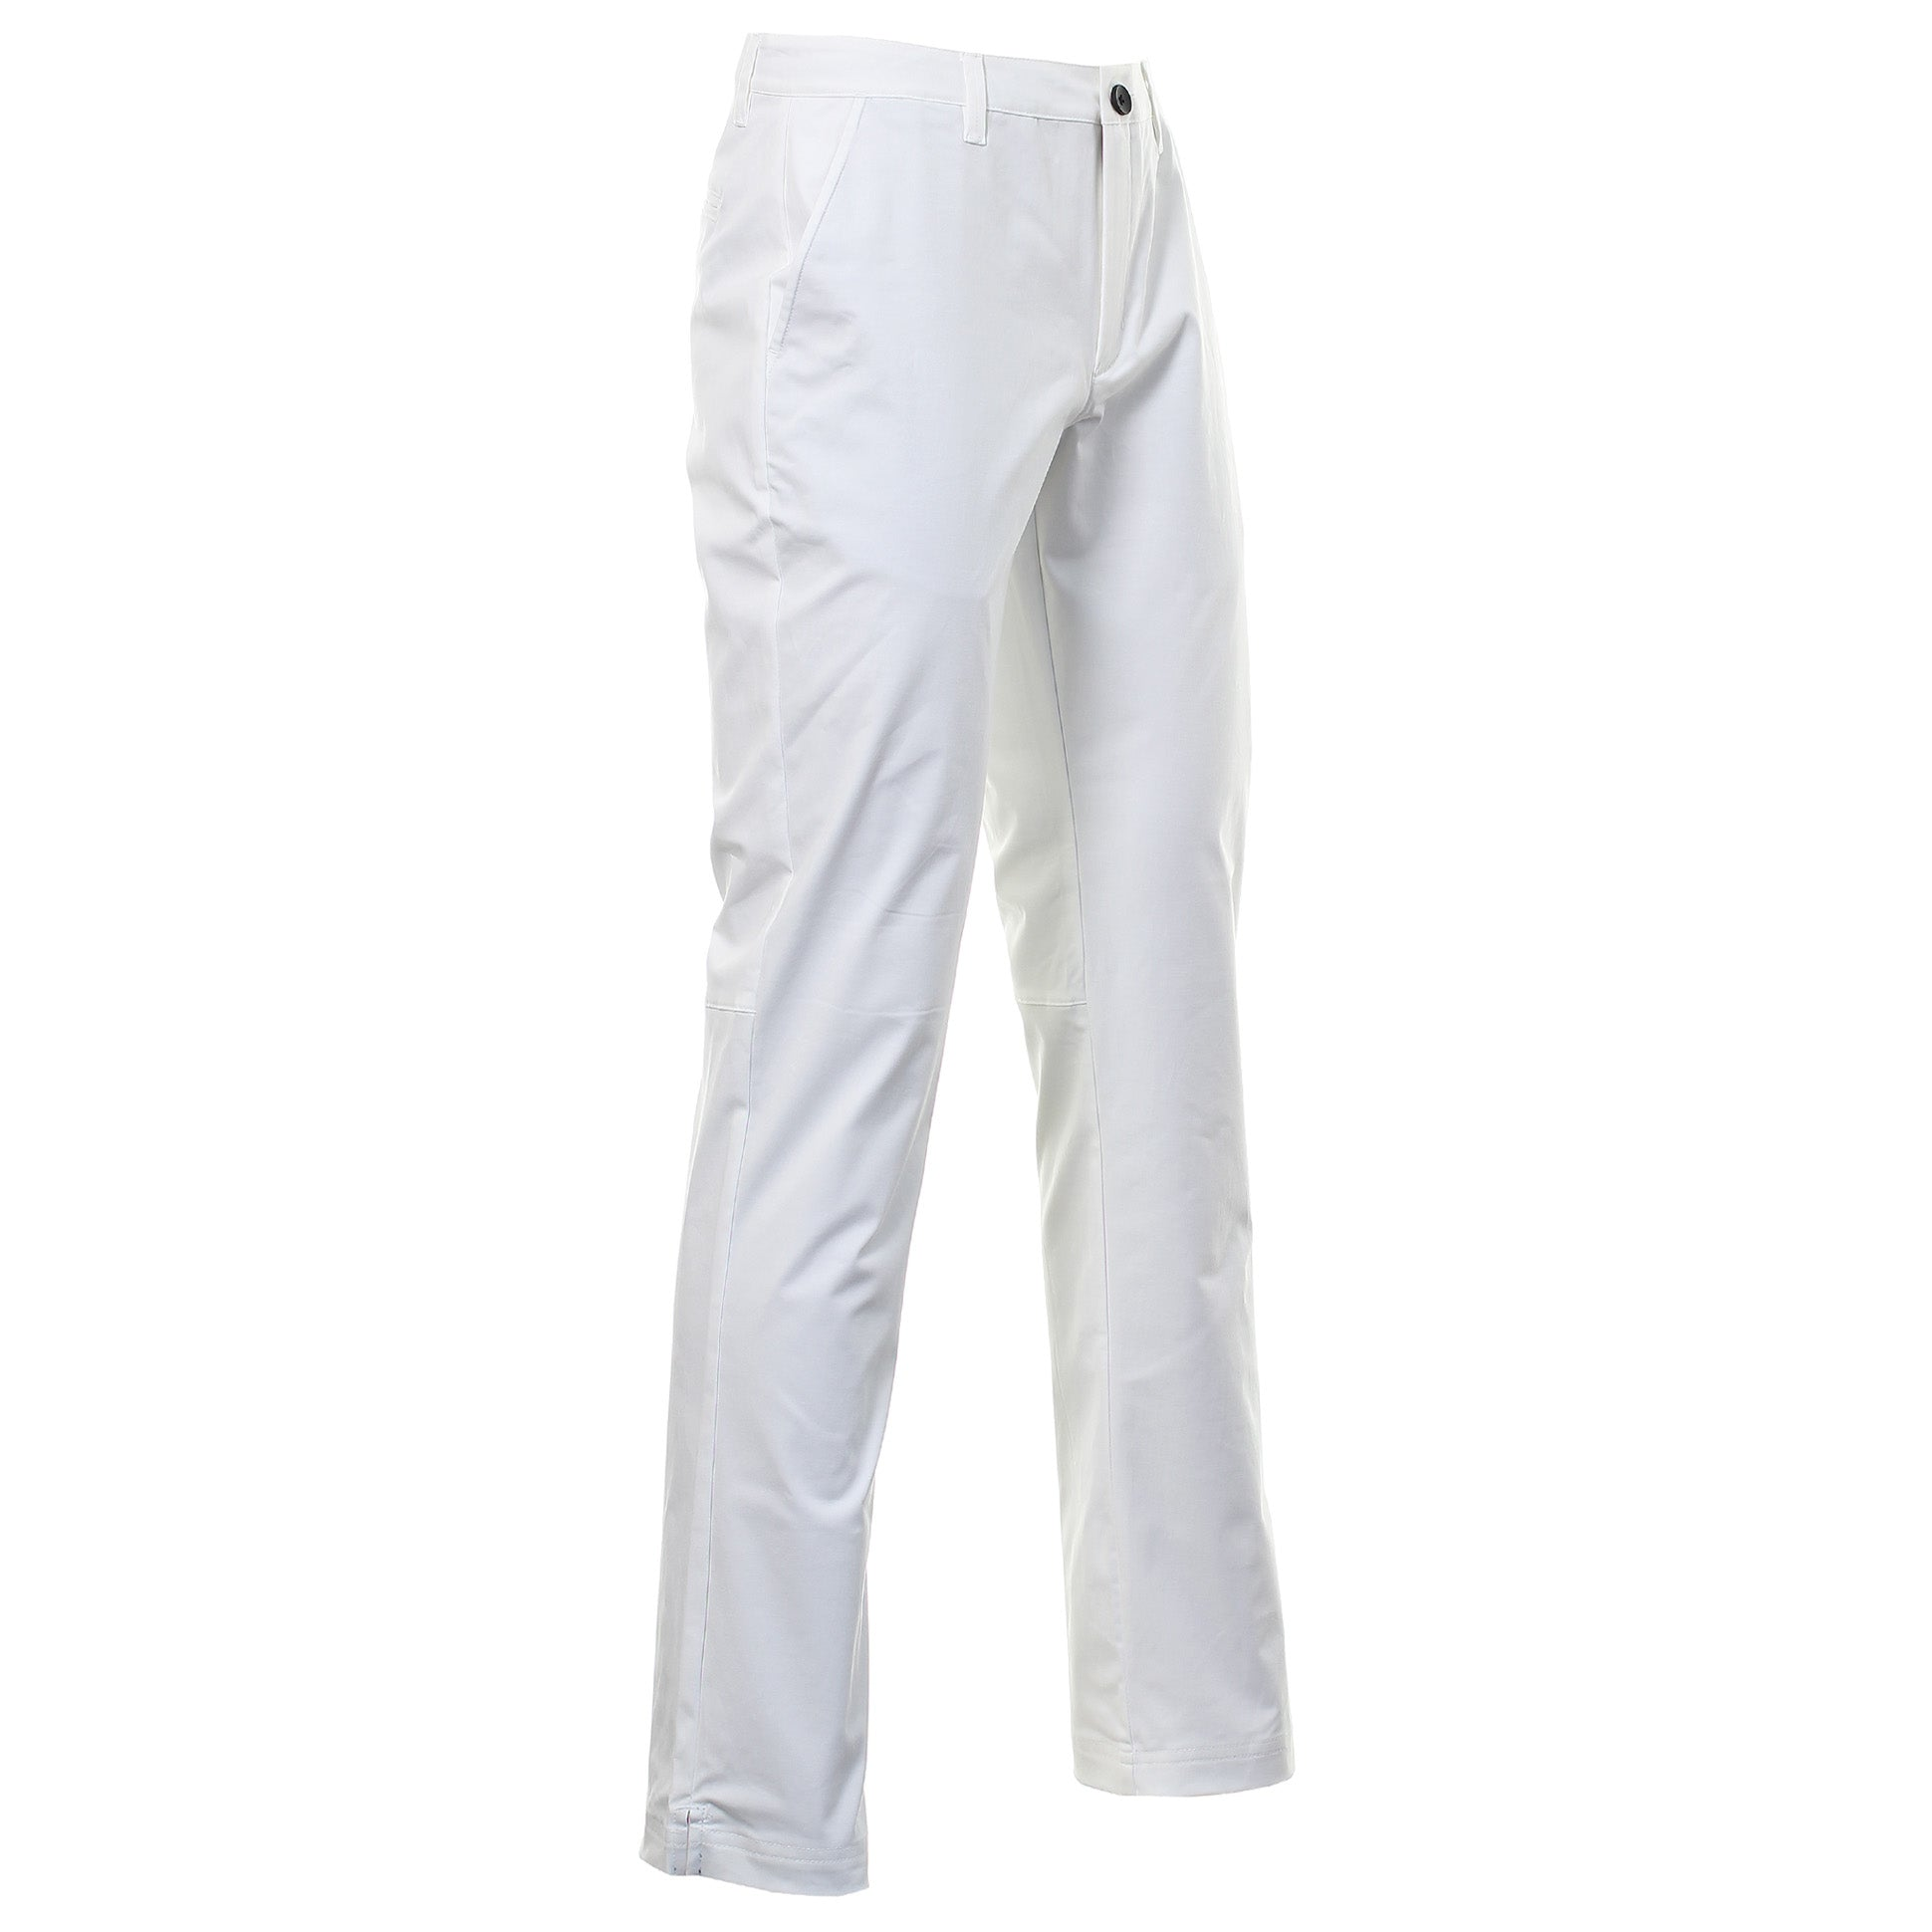 Oakley Chino Icon Golf Pant 422451